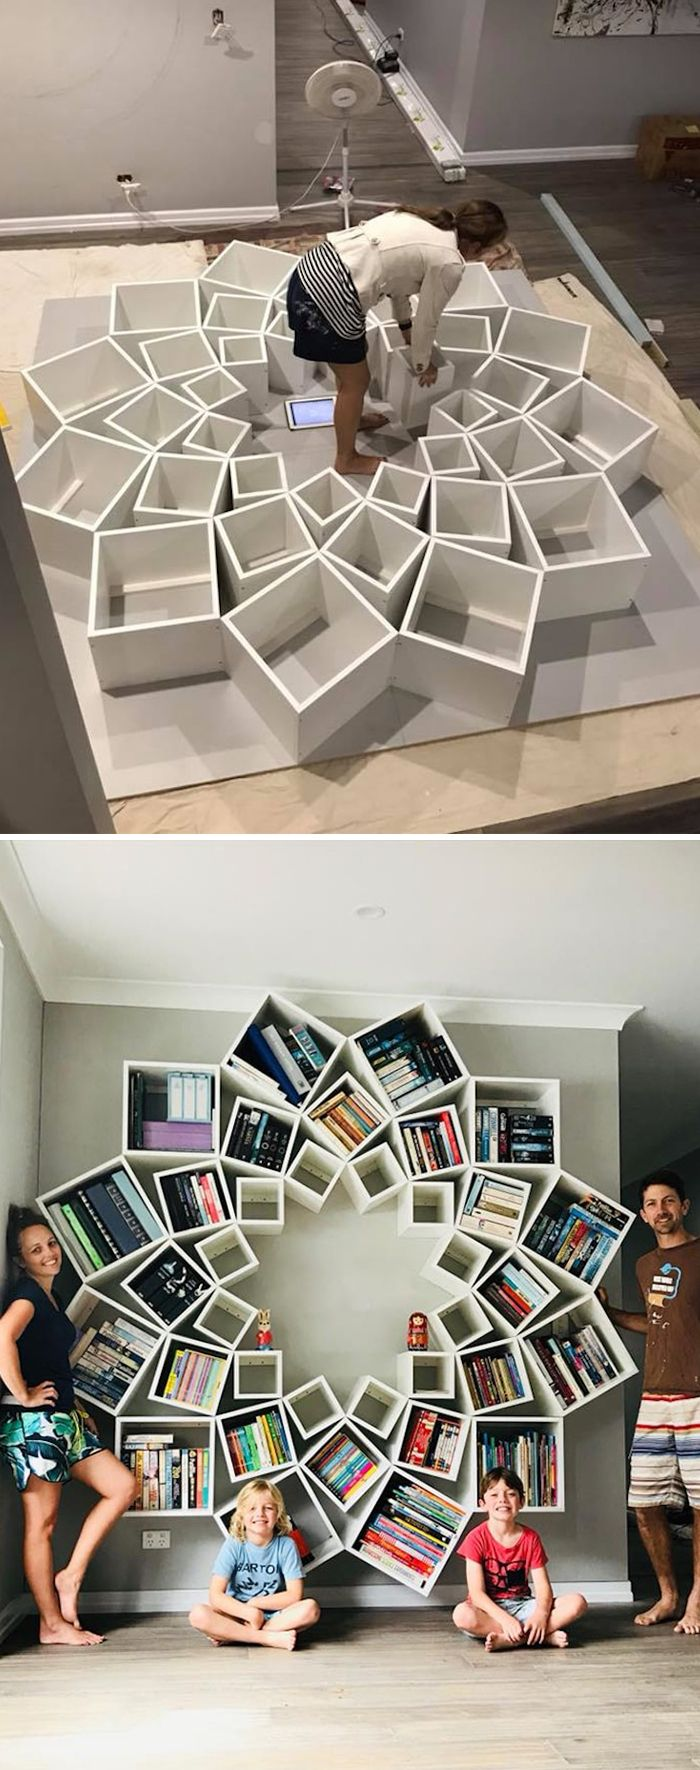 Couple Builds DIY Bookshelf Together And Its A Pinterest Dream Come